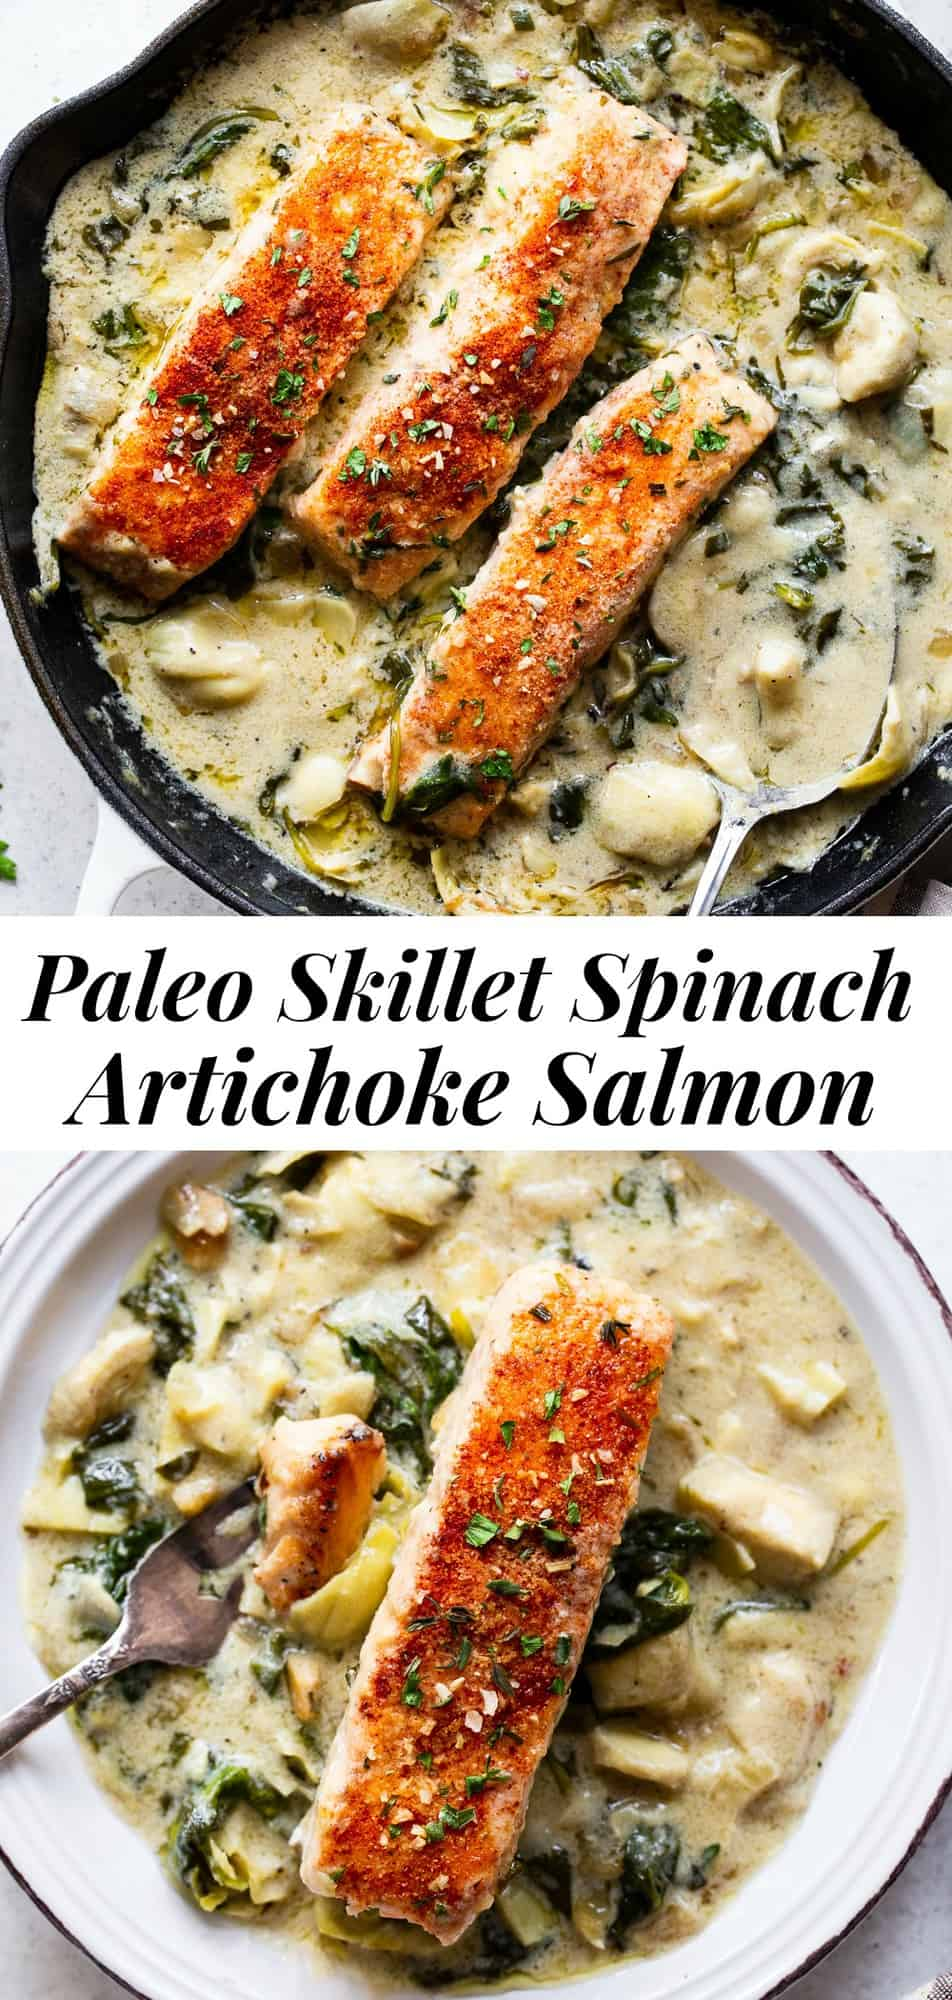 This one-skillet salmon with creamy spinach artichoke sauce is so comforting and packed with flavor and veggies! It's paleo, Whole30 compliant and keto friendly. Great for a delicious and healthy weeknight meal served alone or over cauliflower rice.#paleo #whole30 #keto #cleaneating